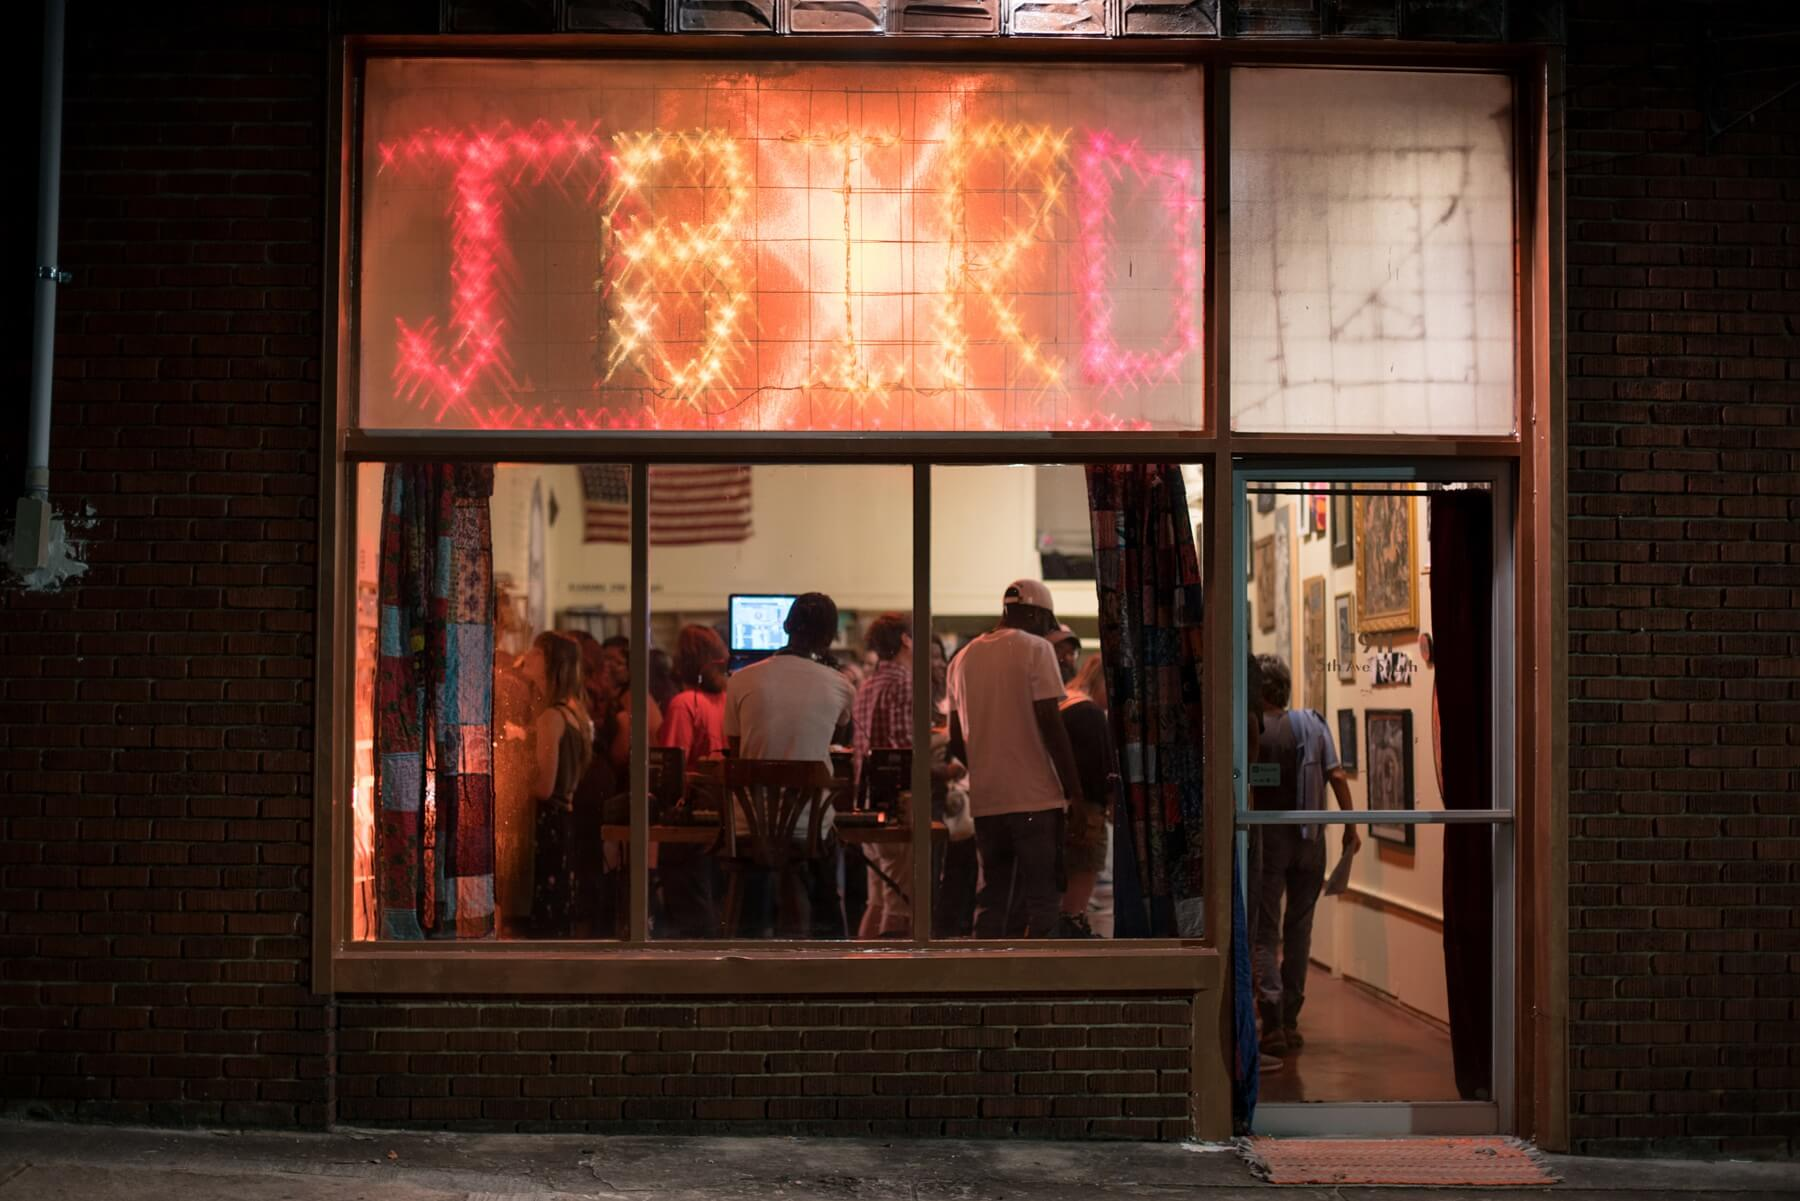 The Jaybird is a budding community arts and performance space on Fifth Avenue South in the Crestwood community. Founded in September 2017, the venue functions to champion the arts in Birmingham. Image: Glory McLaughlin